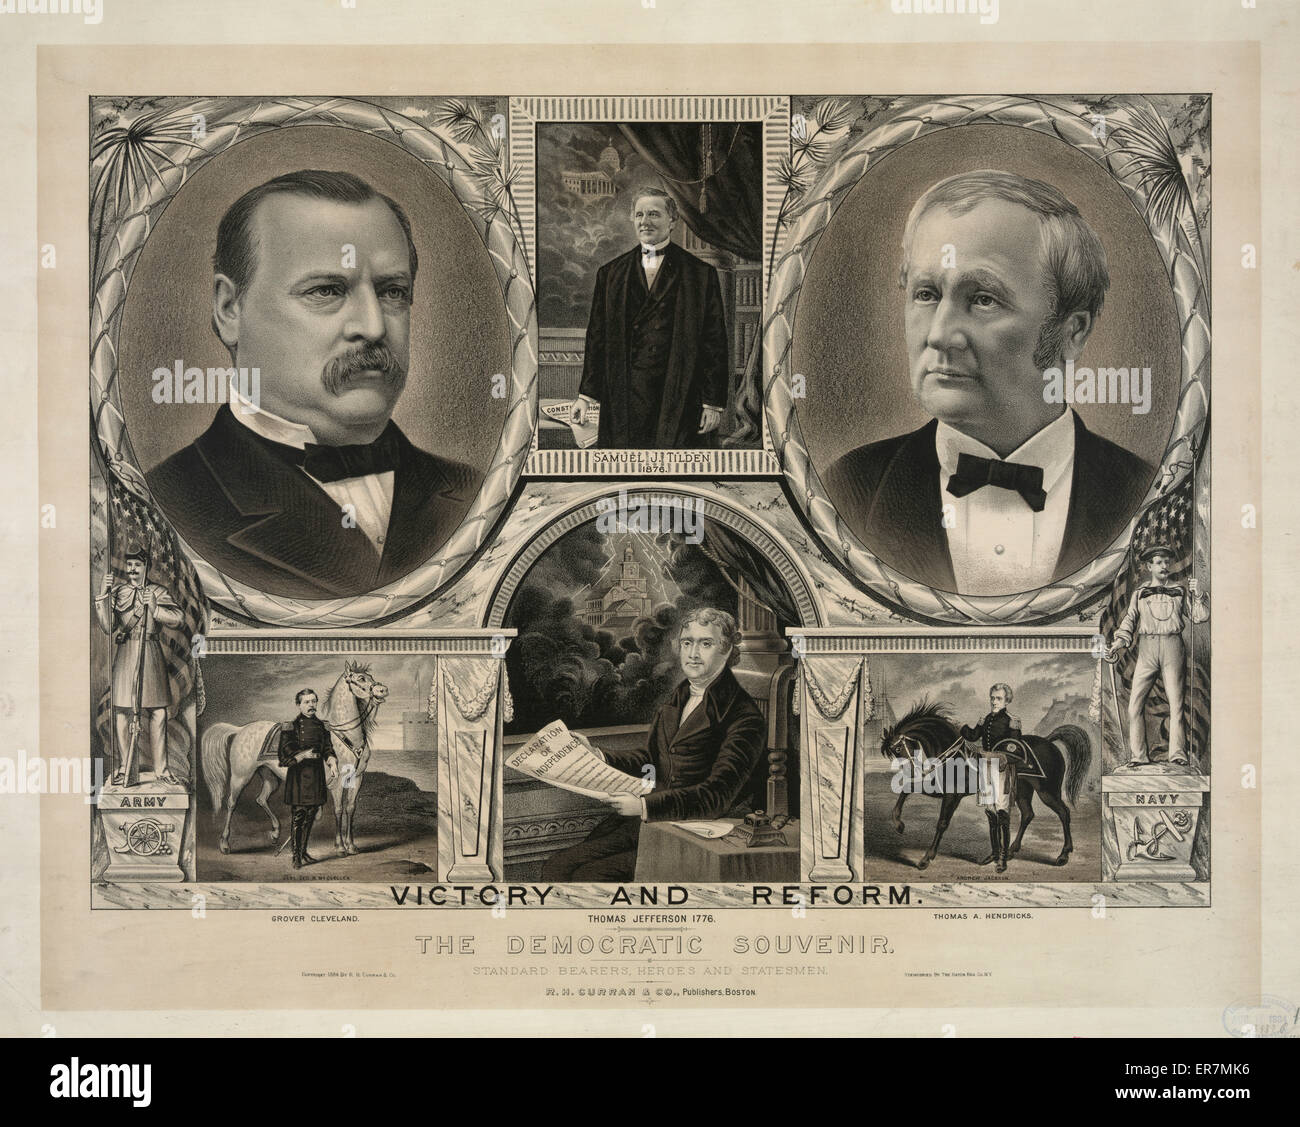 The democratic souvenir. Date c1884 Aug. 11. - Stock Image